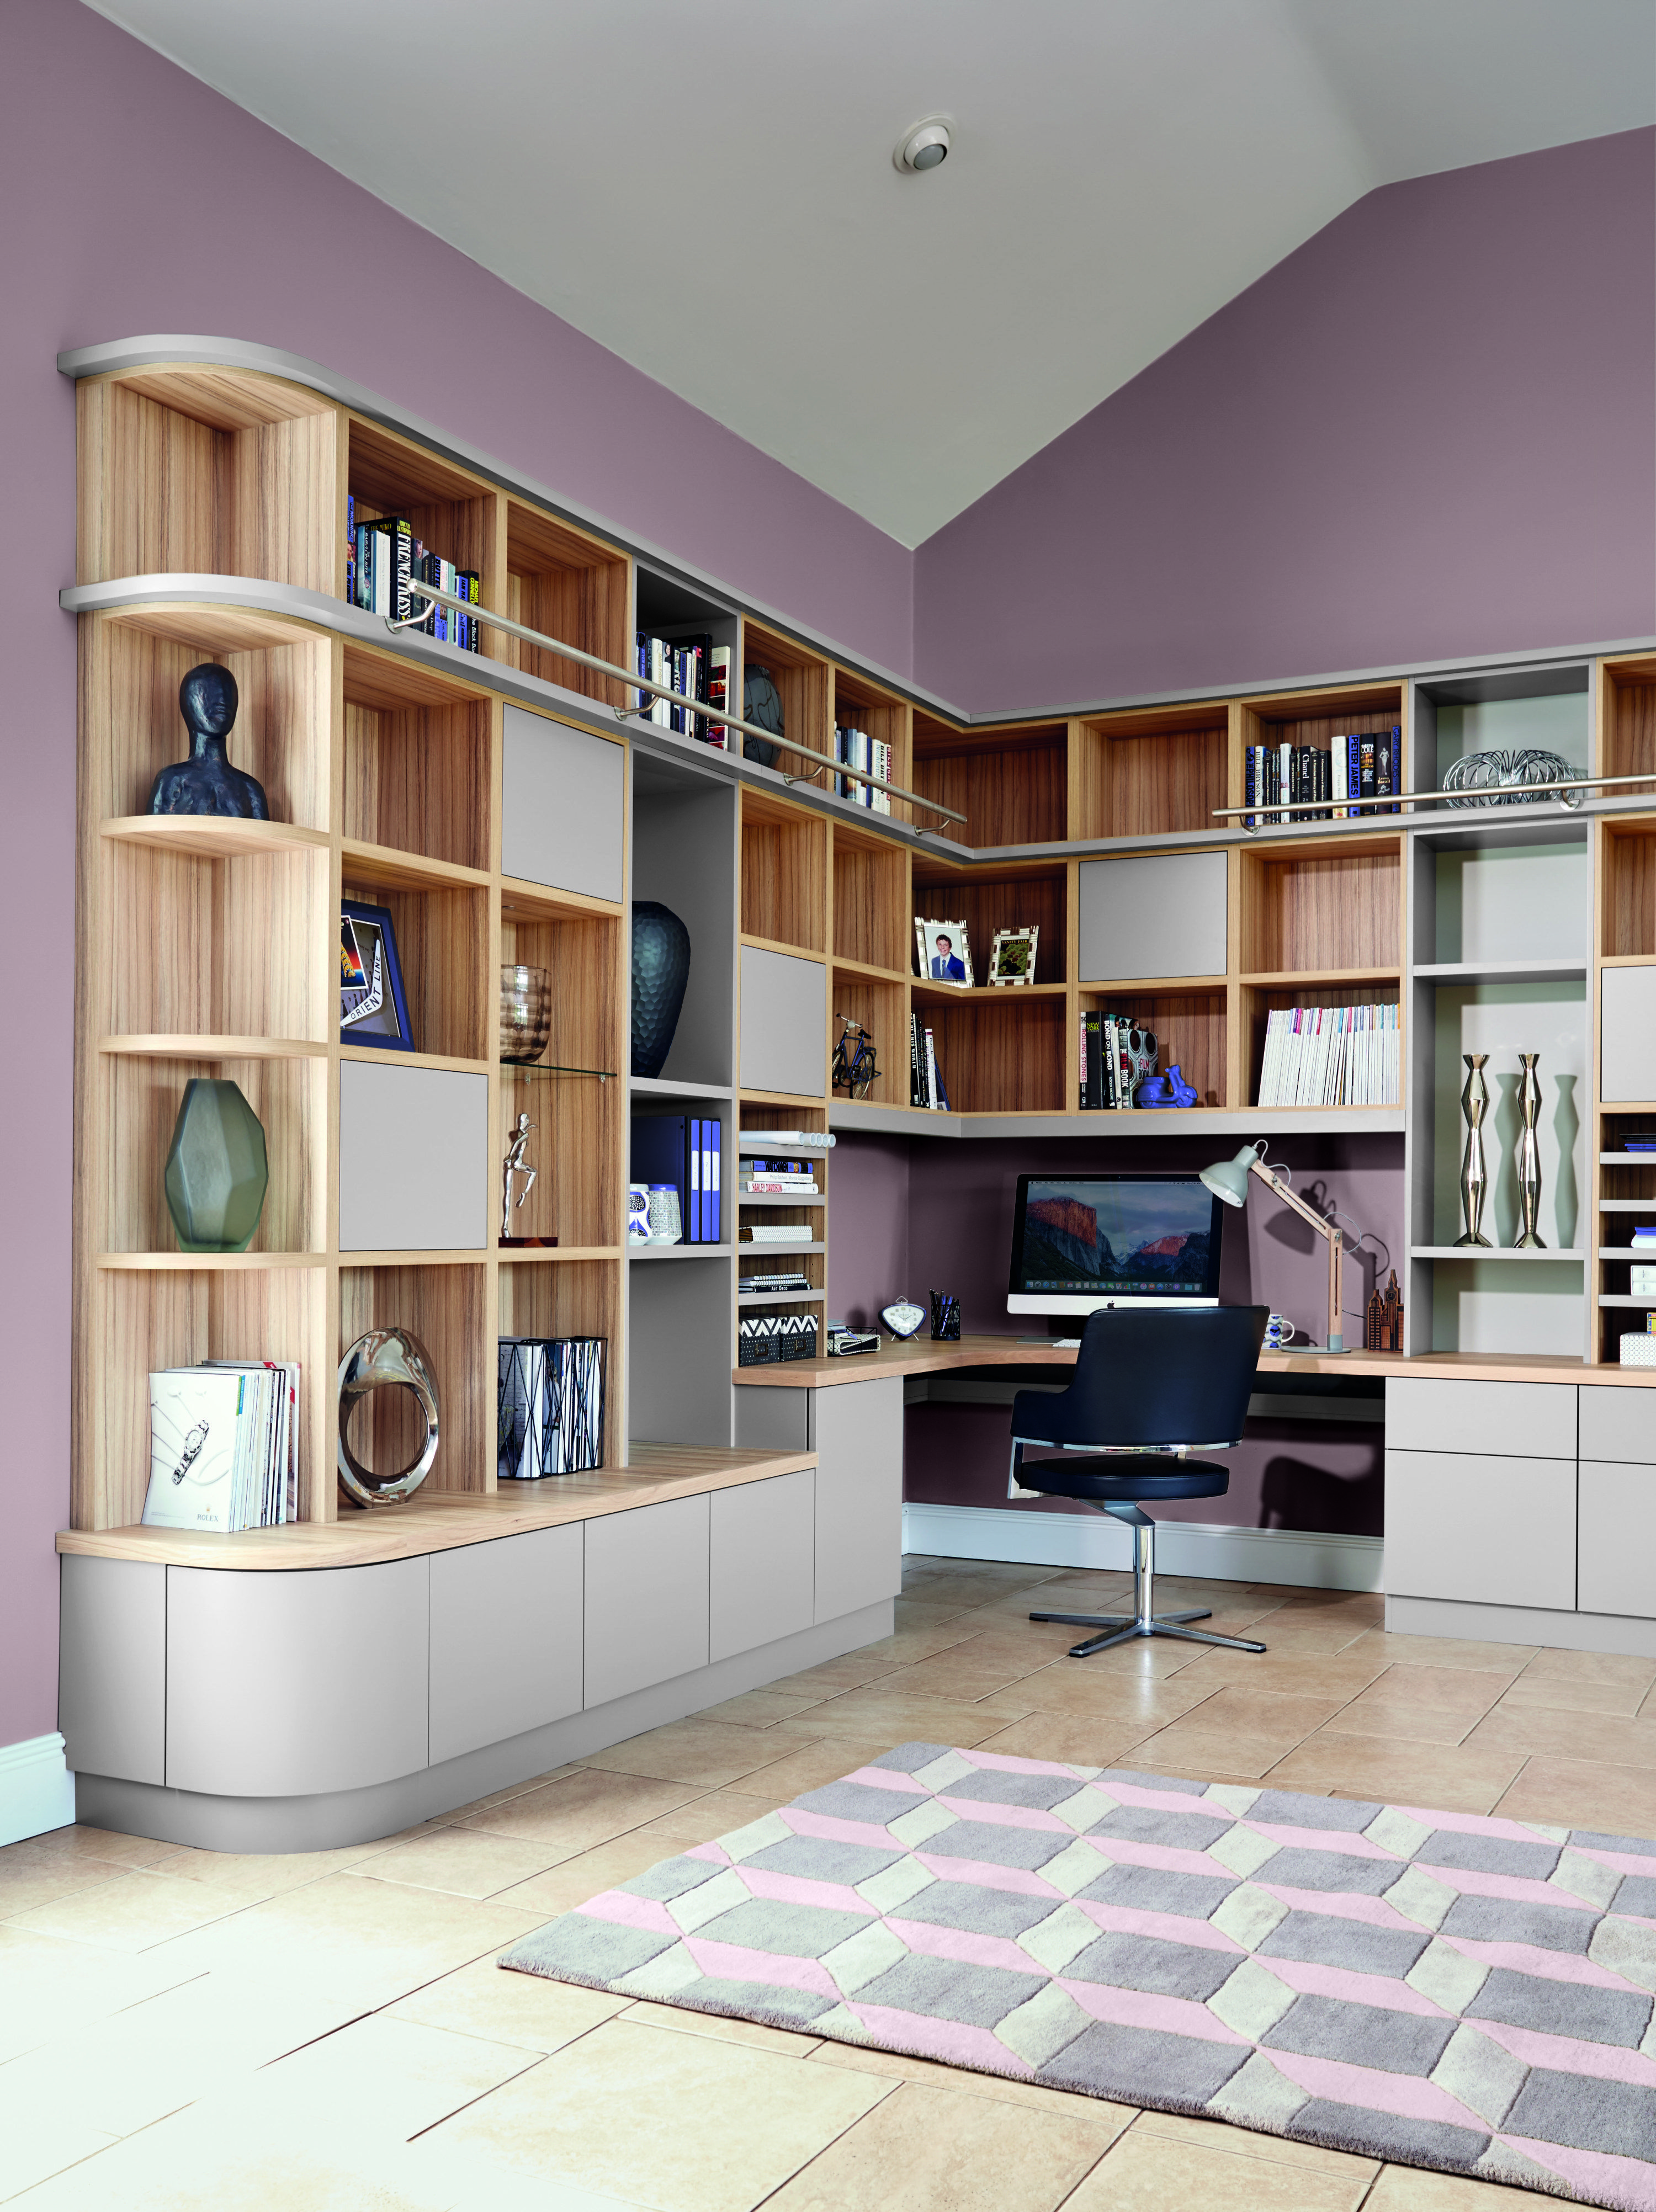 Library Study Room Ideas: Decorating With Colour: Pink And Grey